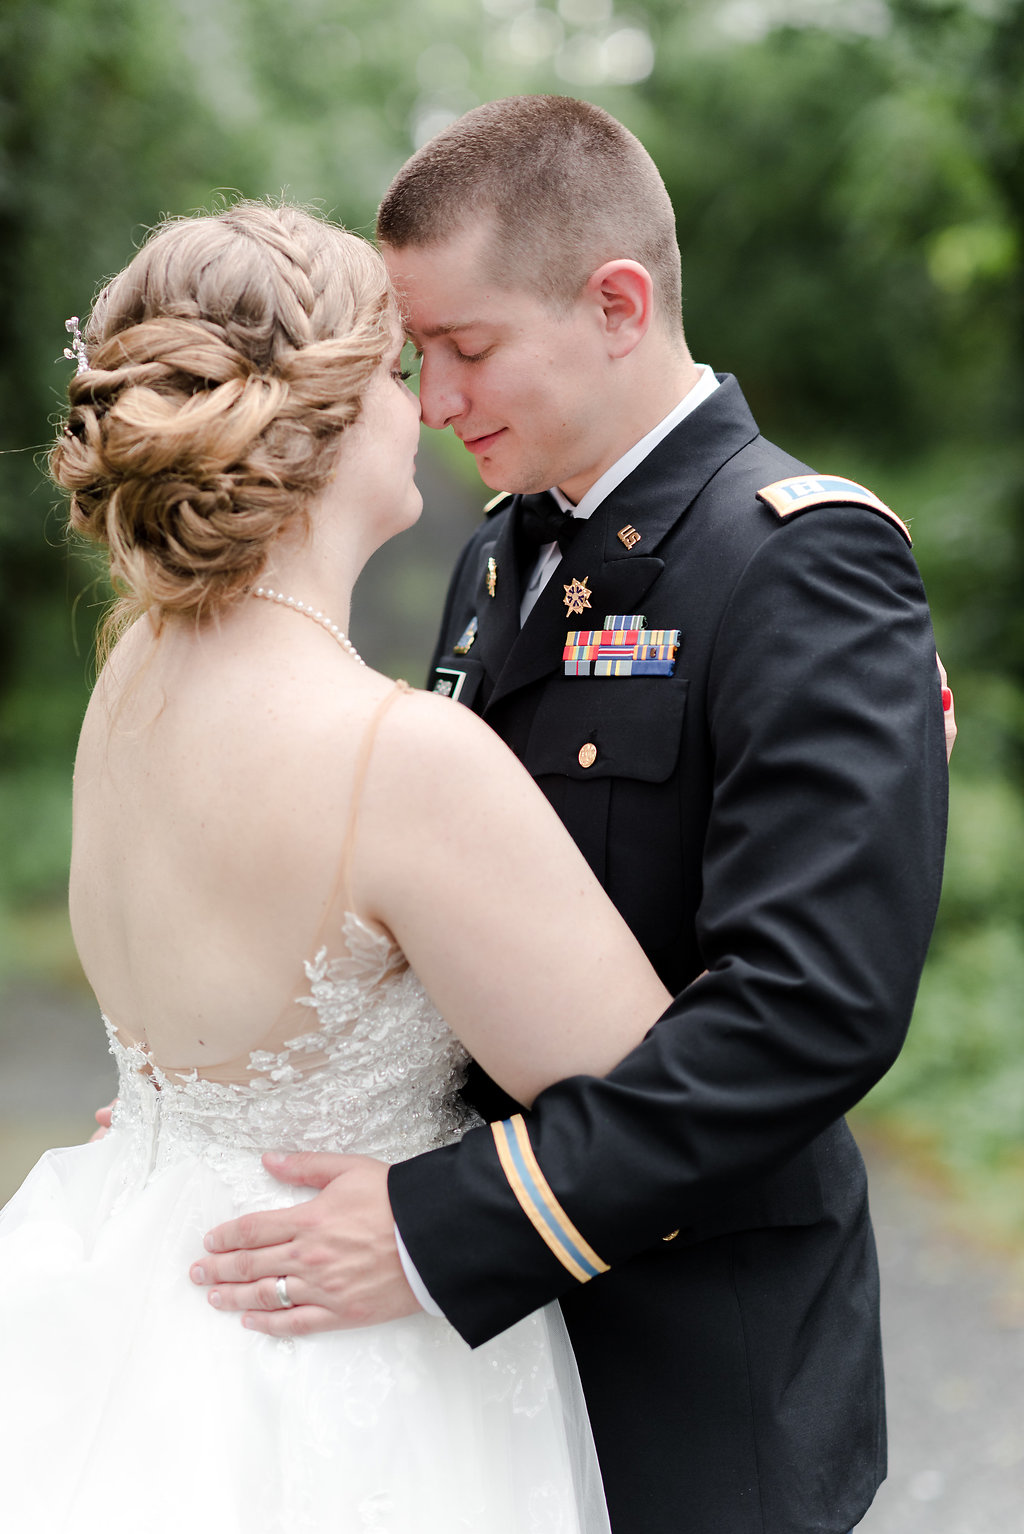 A Classic Rust Manor House Virginia Wedding - The Overwhelmed Bride Wedding Blog